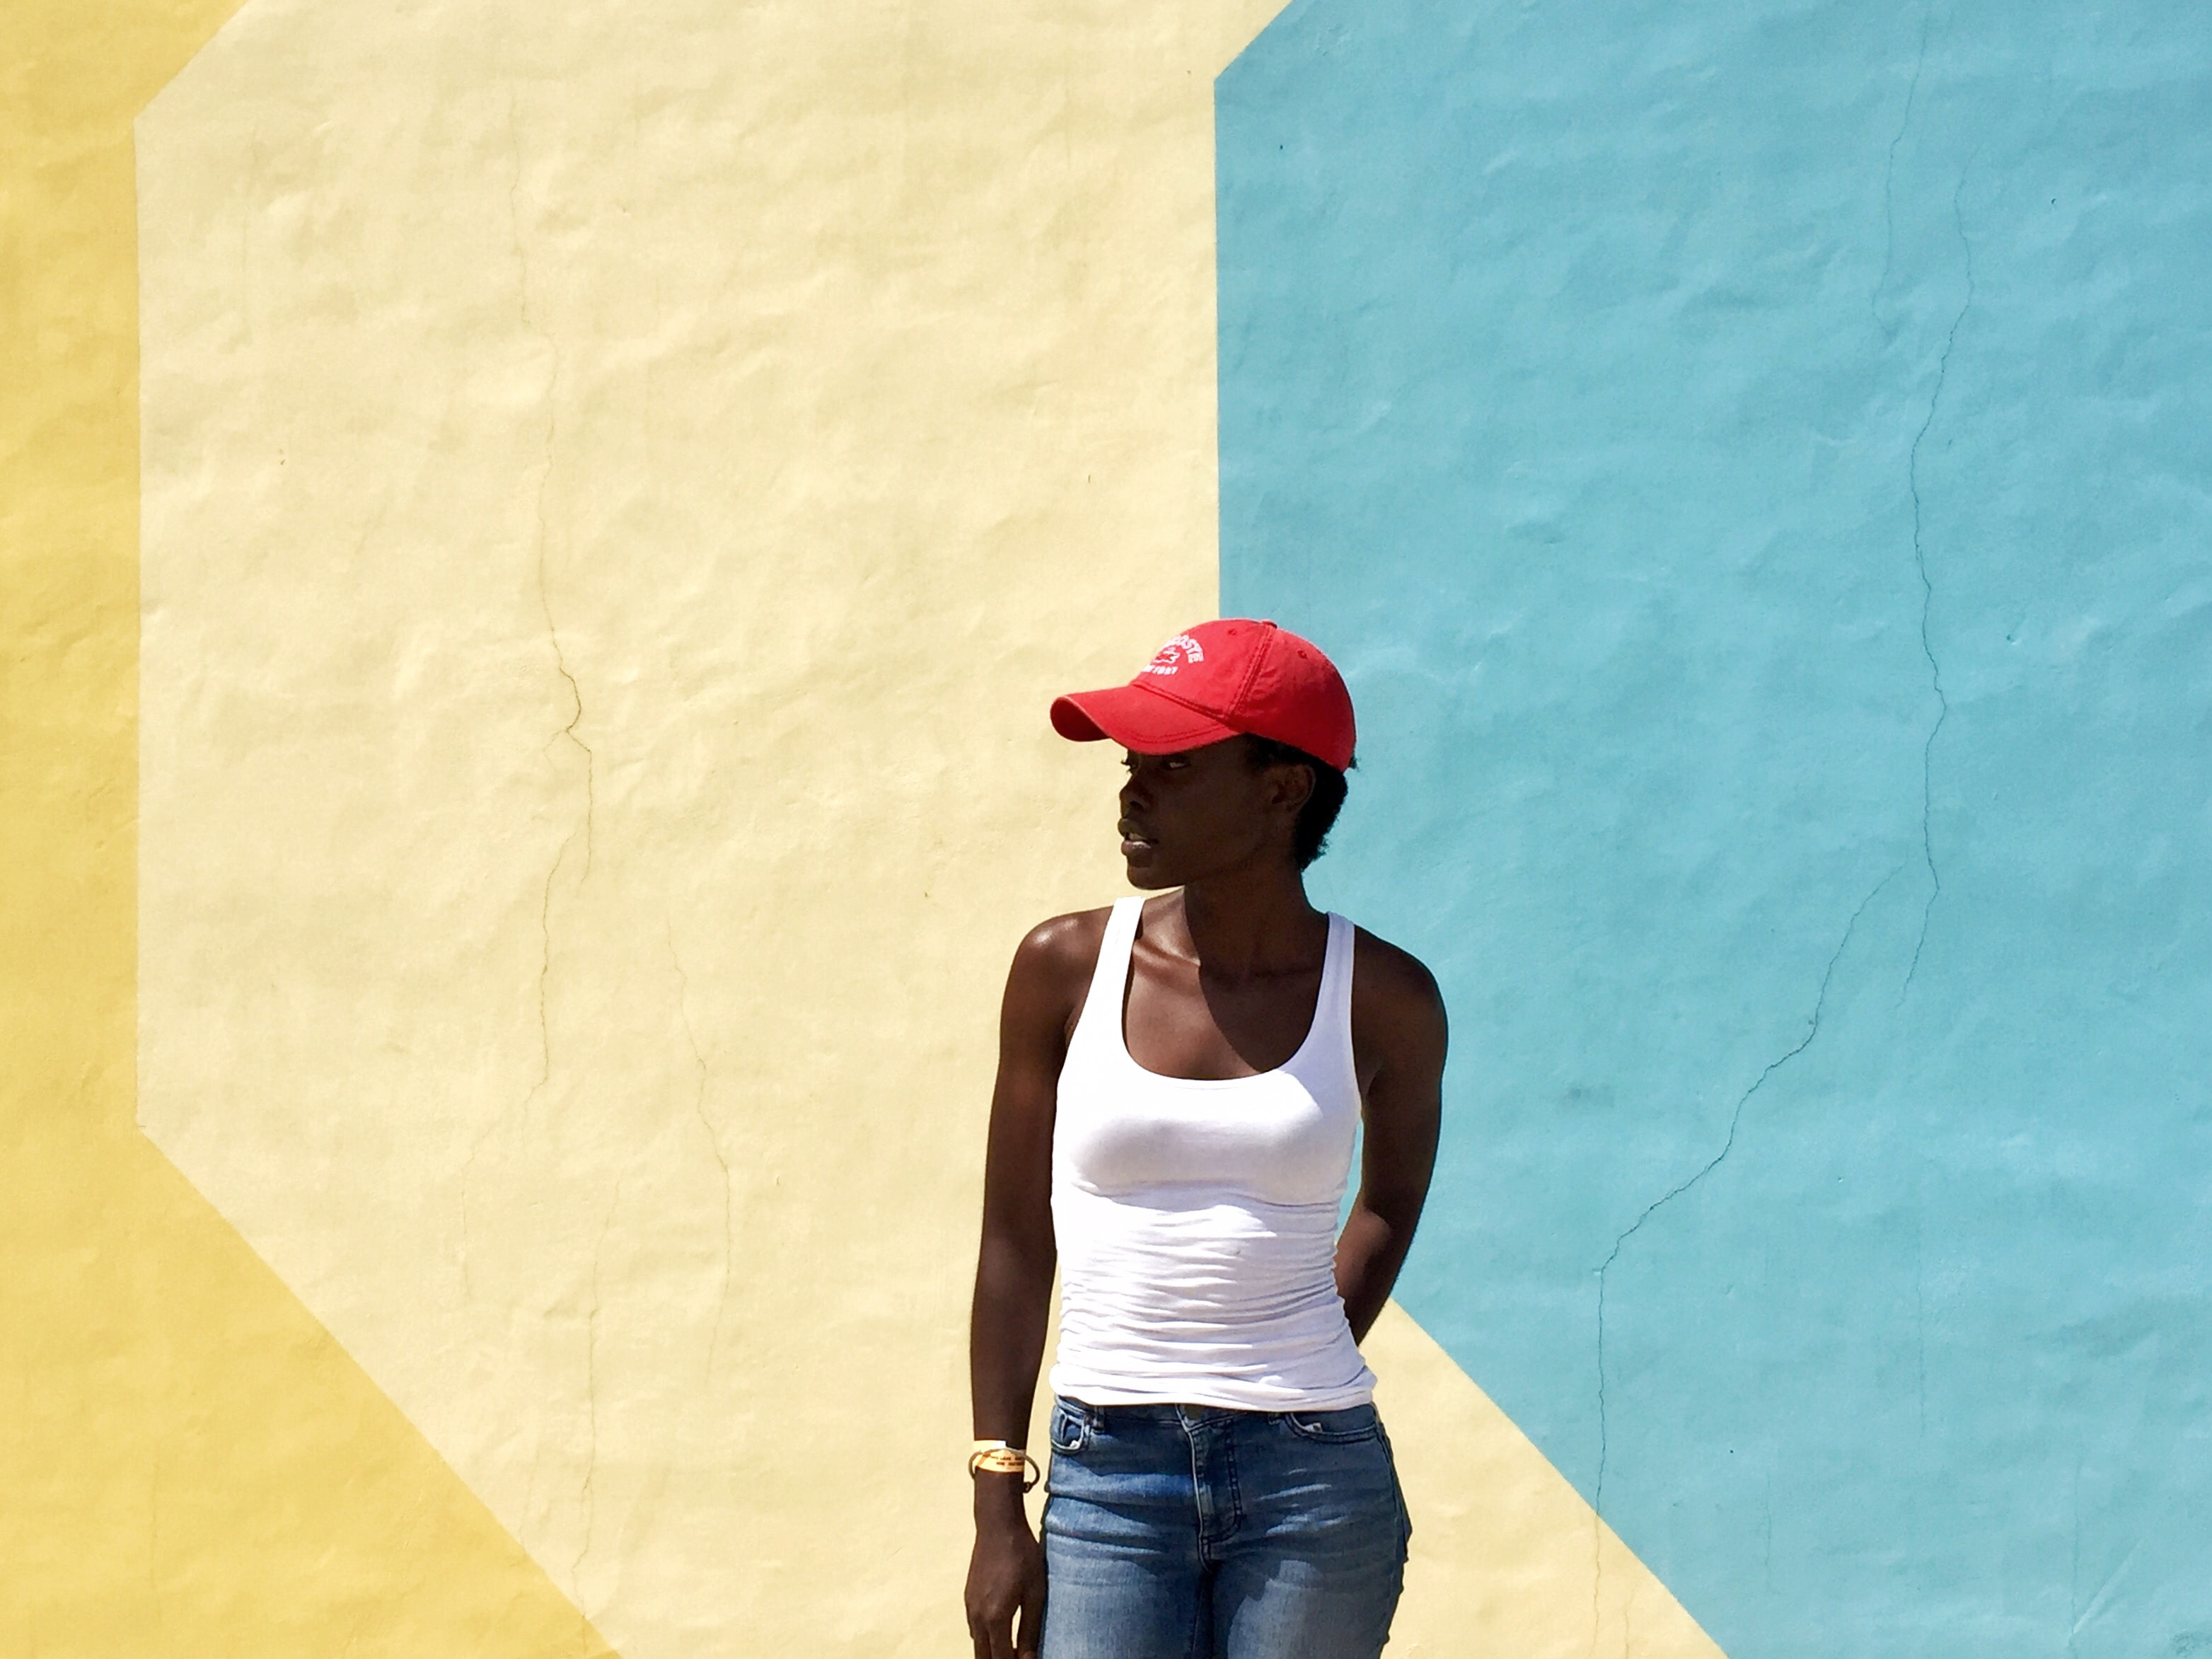 woman wearing white tank top standing next to beige and blue painted wall during daytime